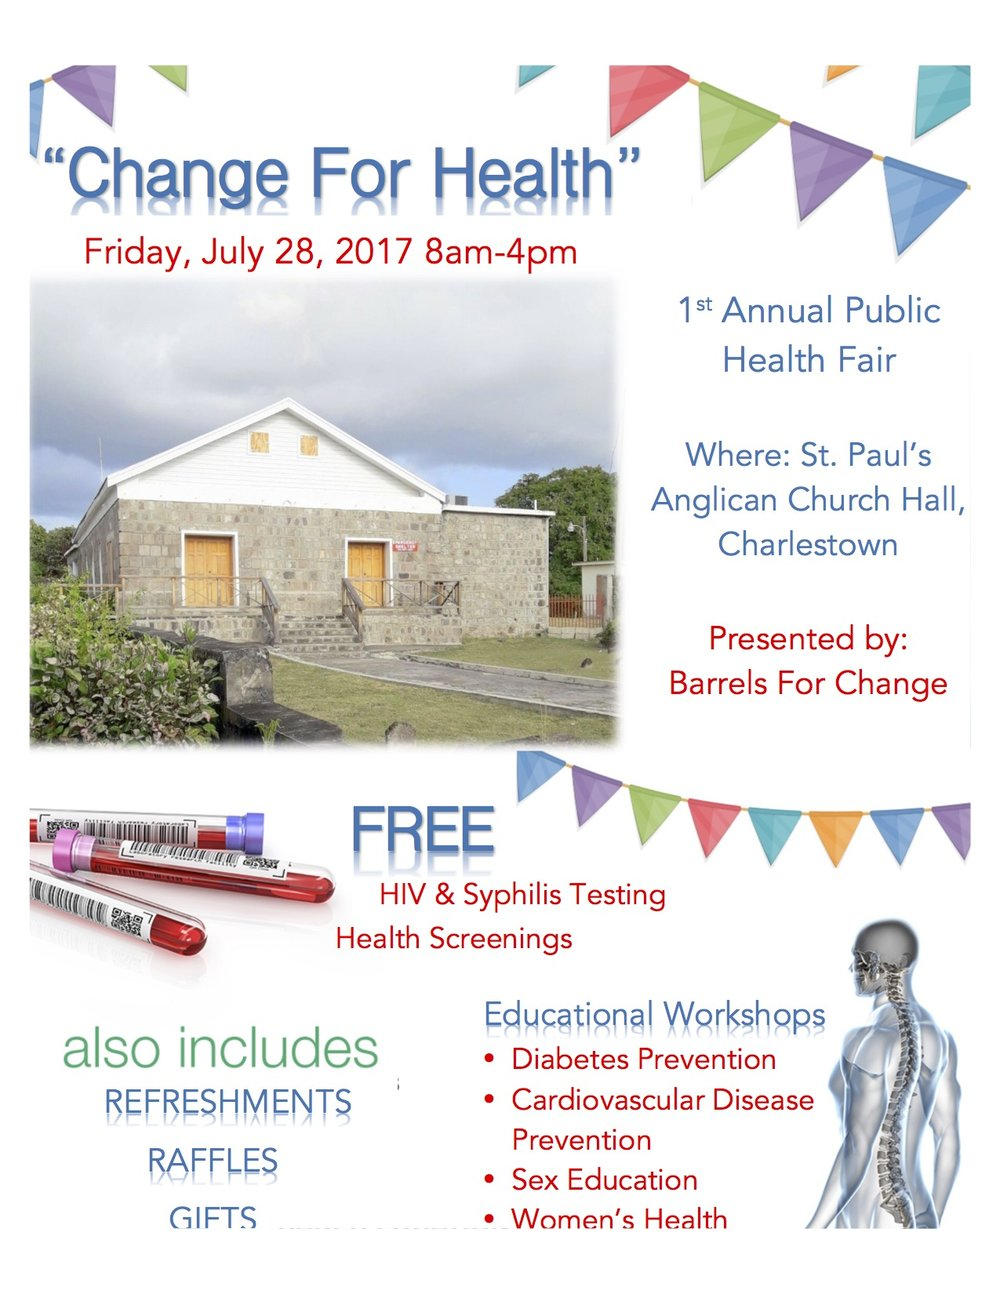 The first annual health fair will focus on educating and providing medical services to citizens who do not have access to these resources on a daily basis.